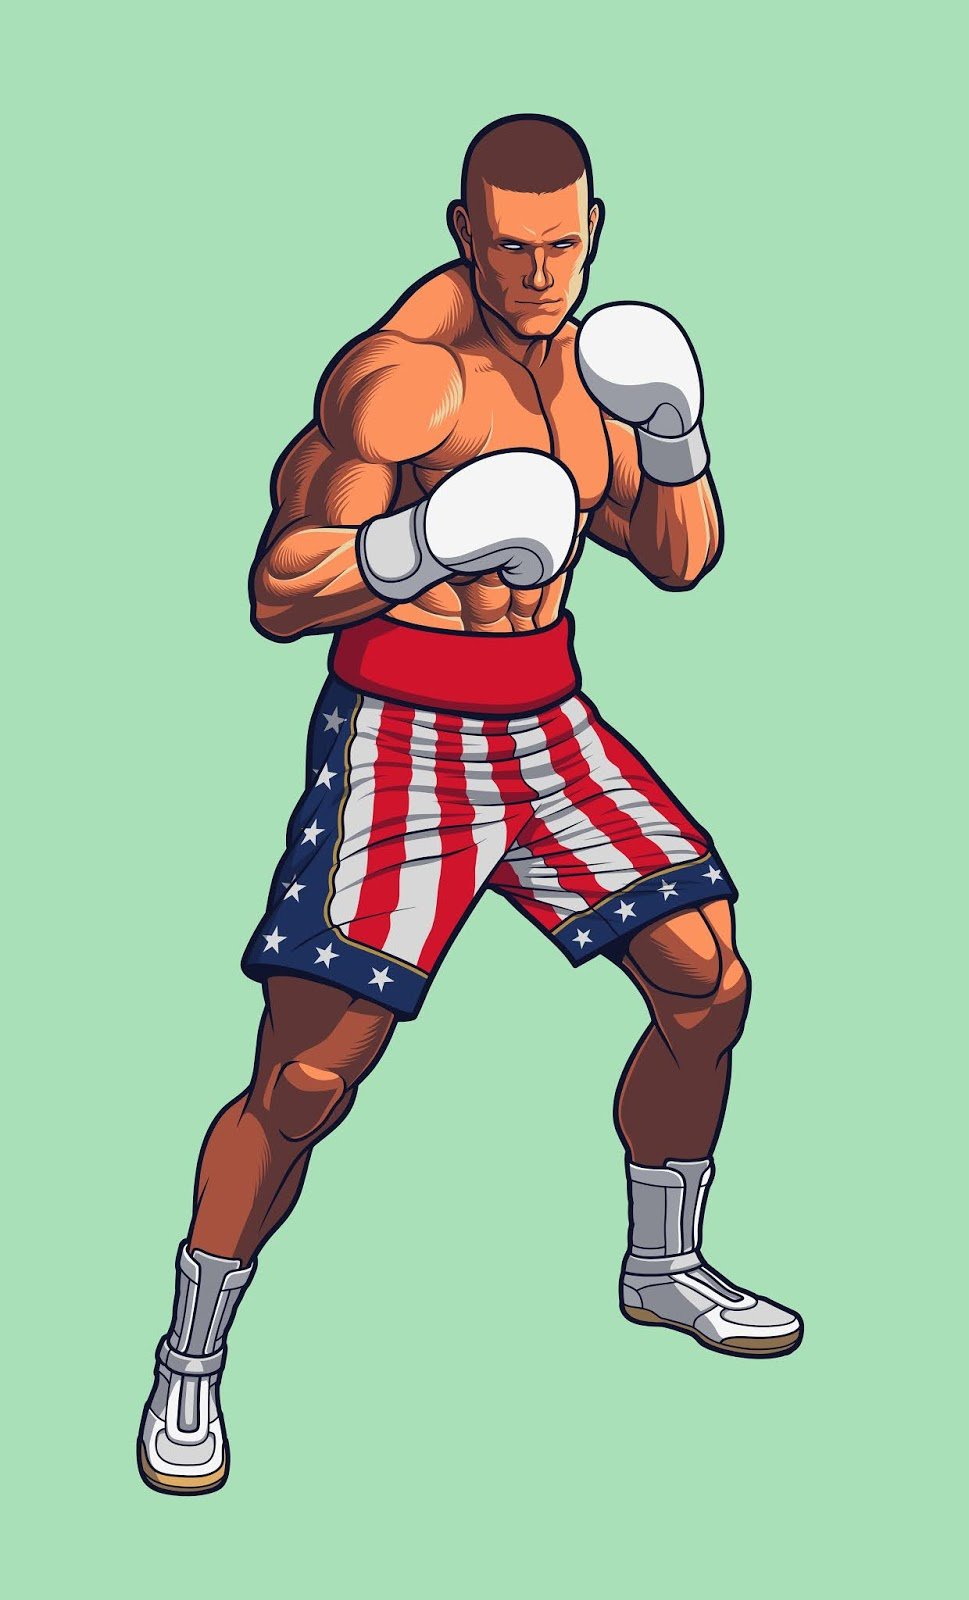 Boxing Fighter Wearing Usa Flag Free Download Vector CDR, AI, EPS and PNG Formats